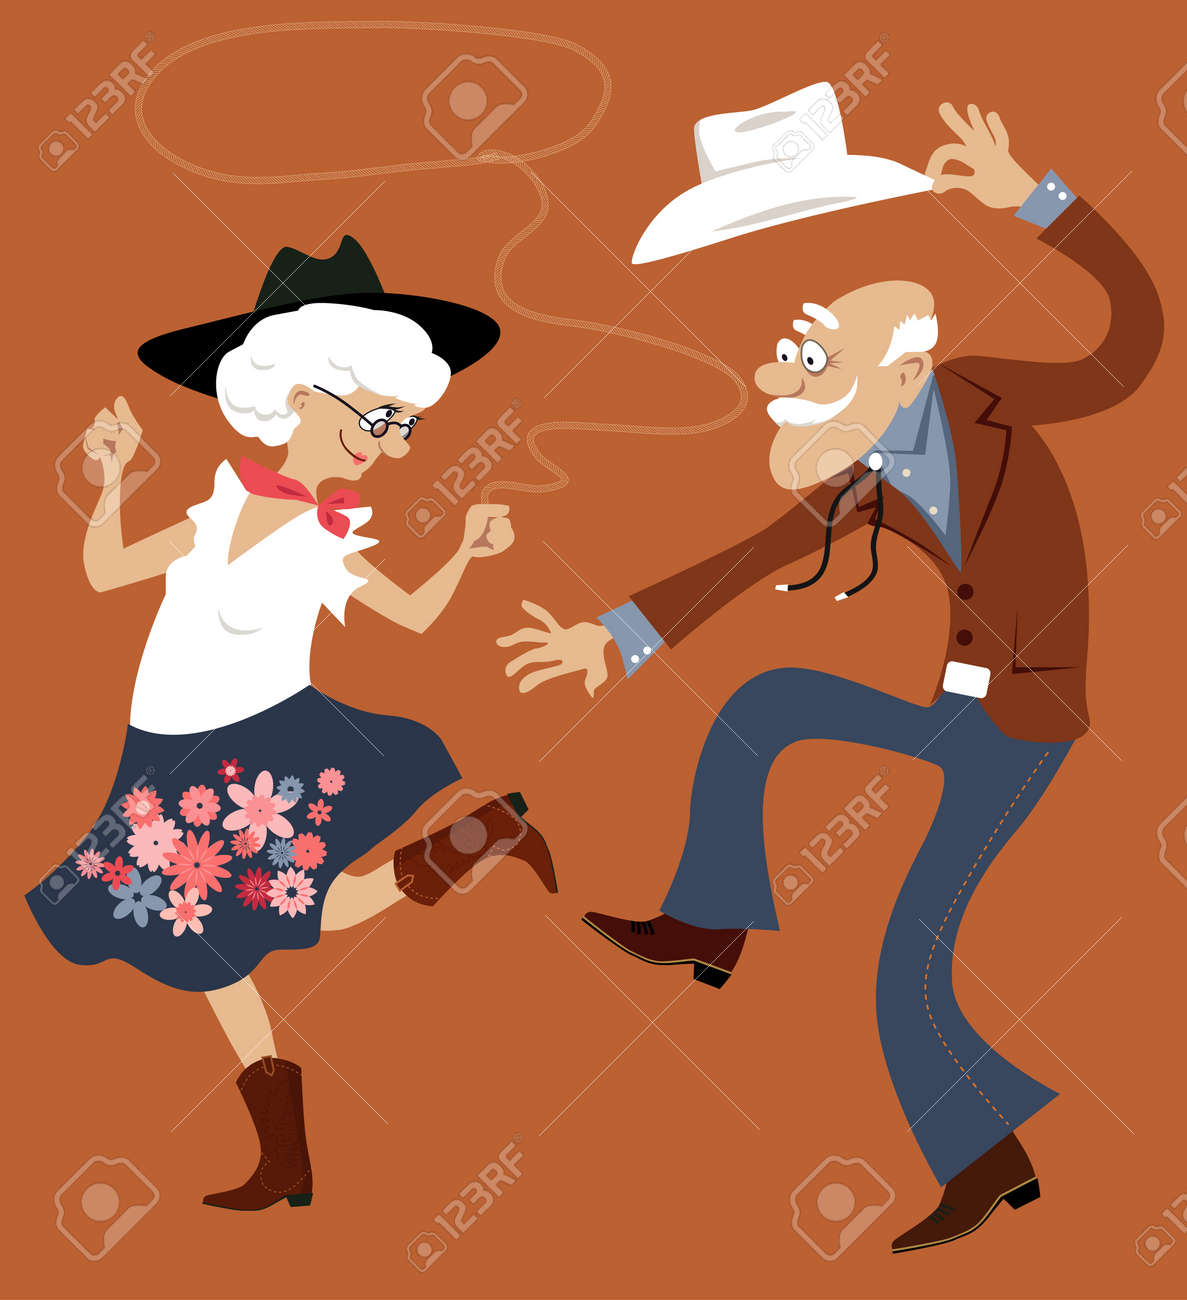 Senior couple dressed in traditional western costumes dancing square dance or contradance, EPS 8 vector illustration, no transparencies - 63512568